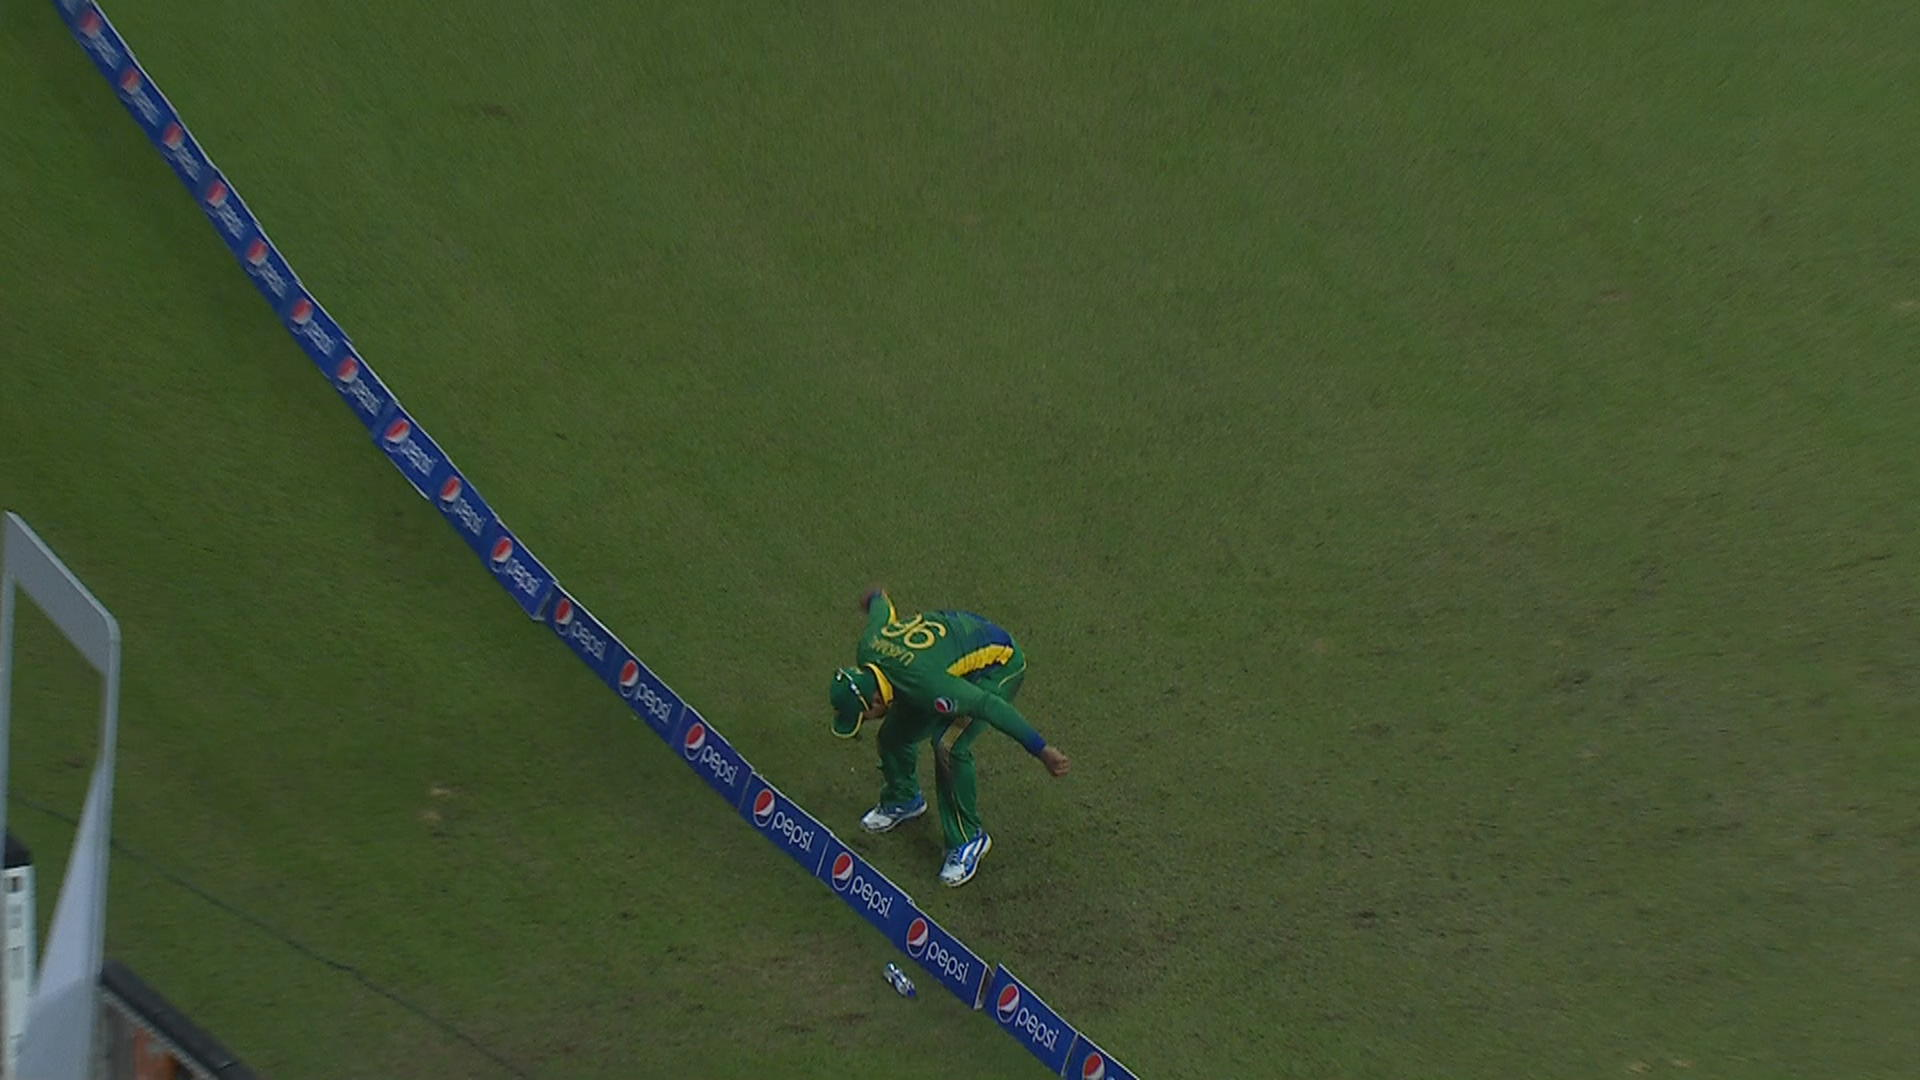 Stunning Catch by Umar Akmal in 2nd T20 vs Eng